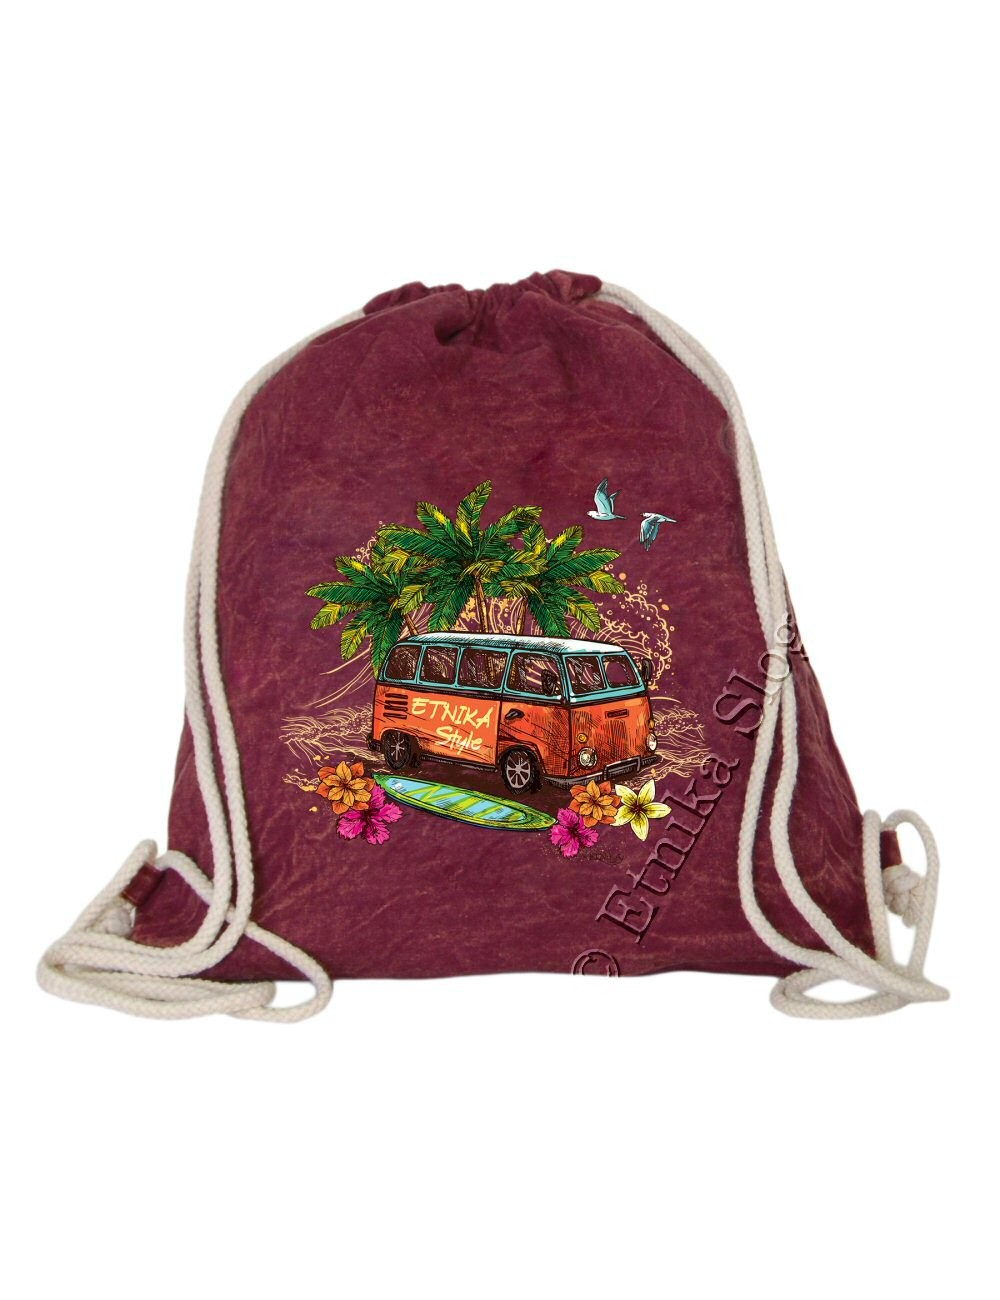 PRINTED COTTON BACKPACKS BS-ZC36-35 - Oriente Import S.r.l.